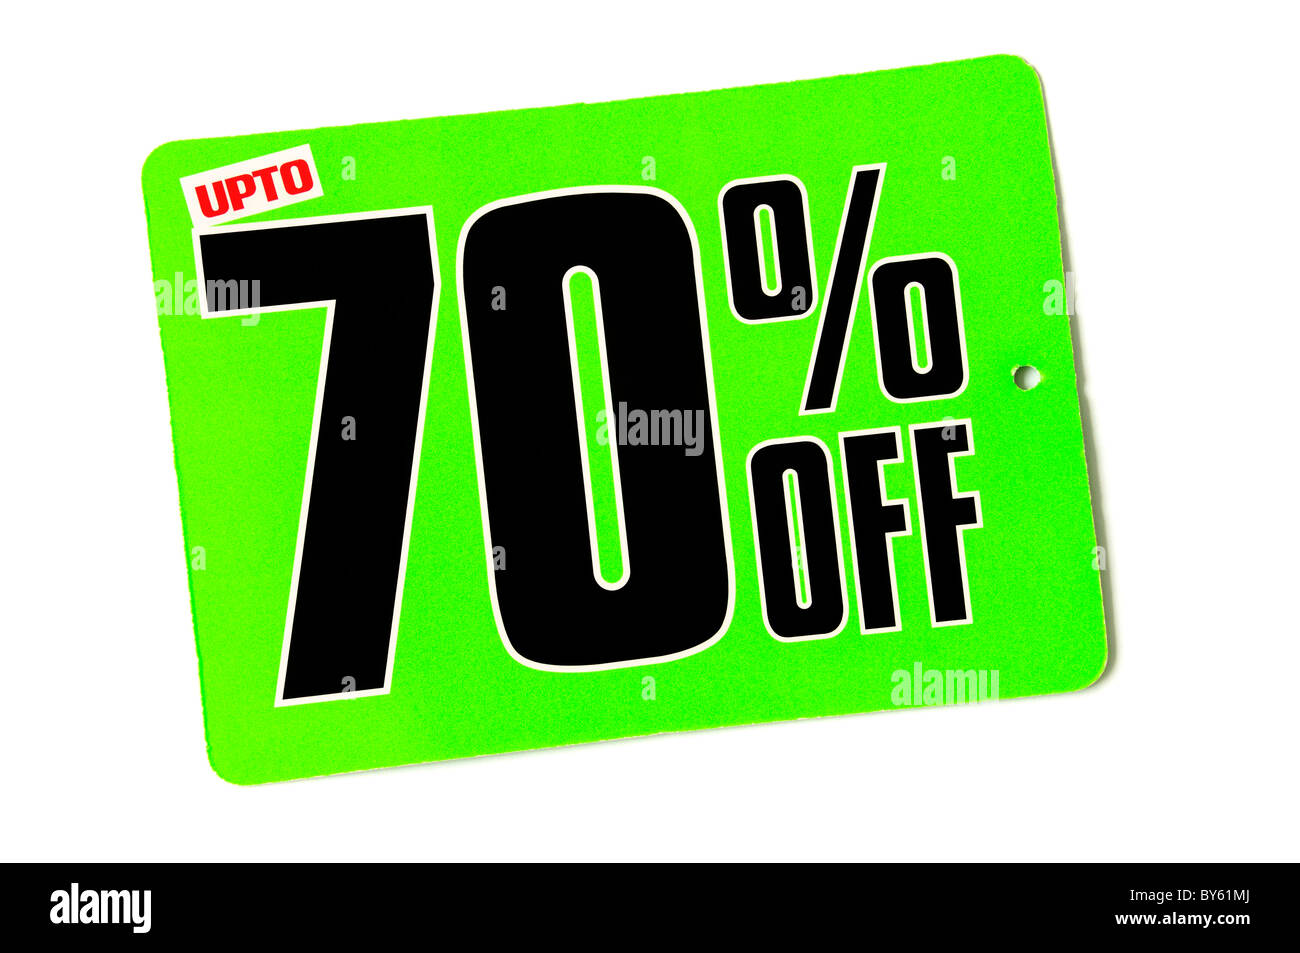 UPTO 70% off sale tag - Stock Image